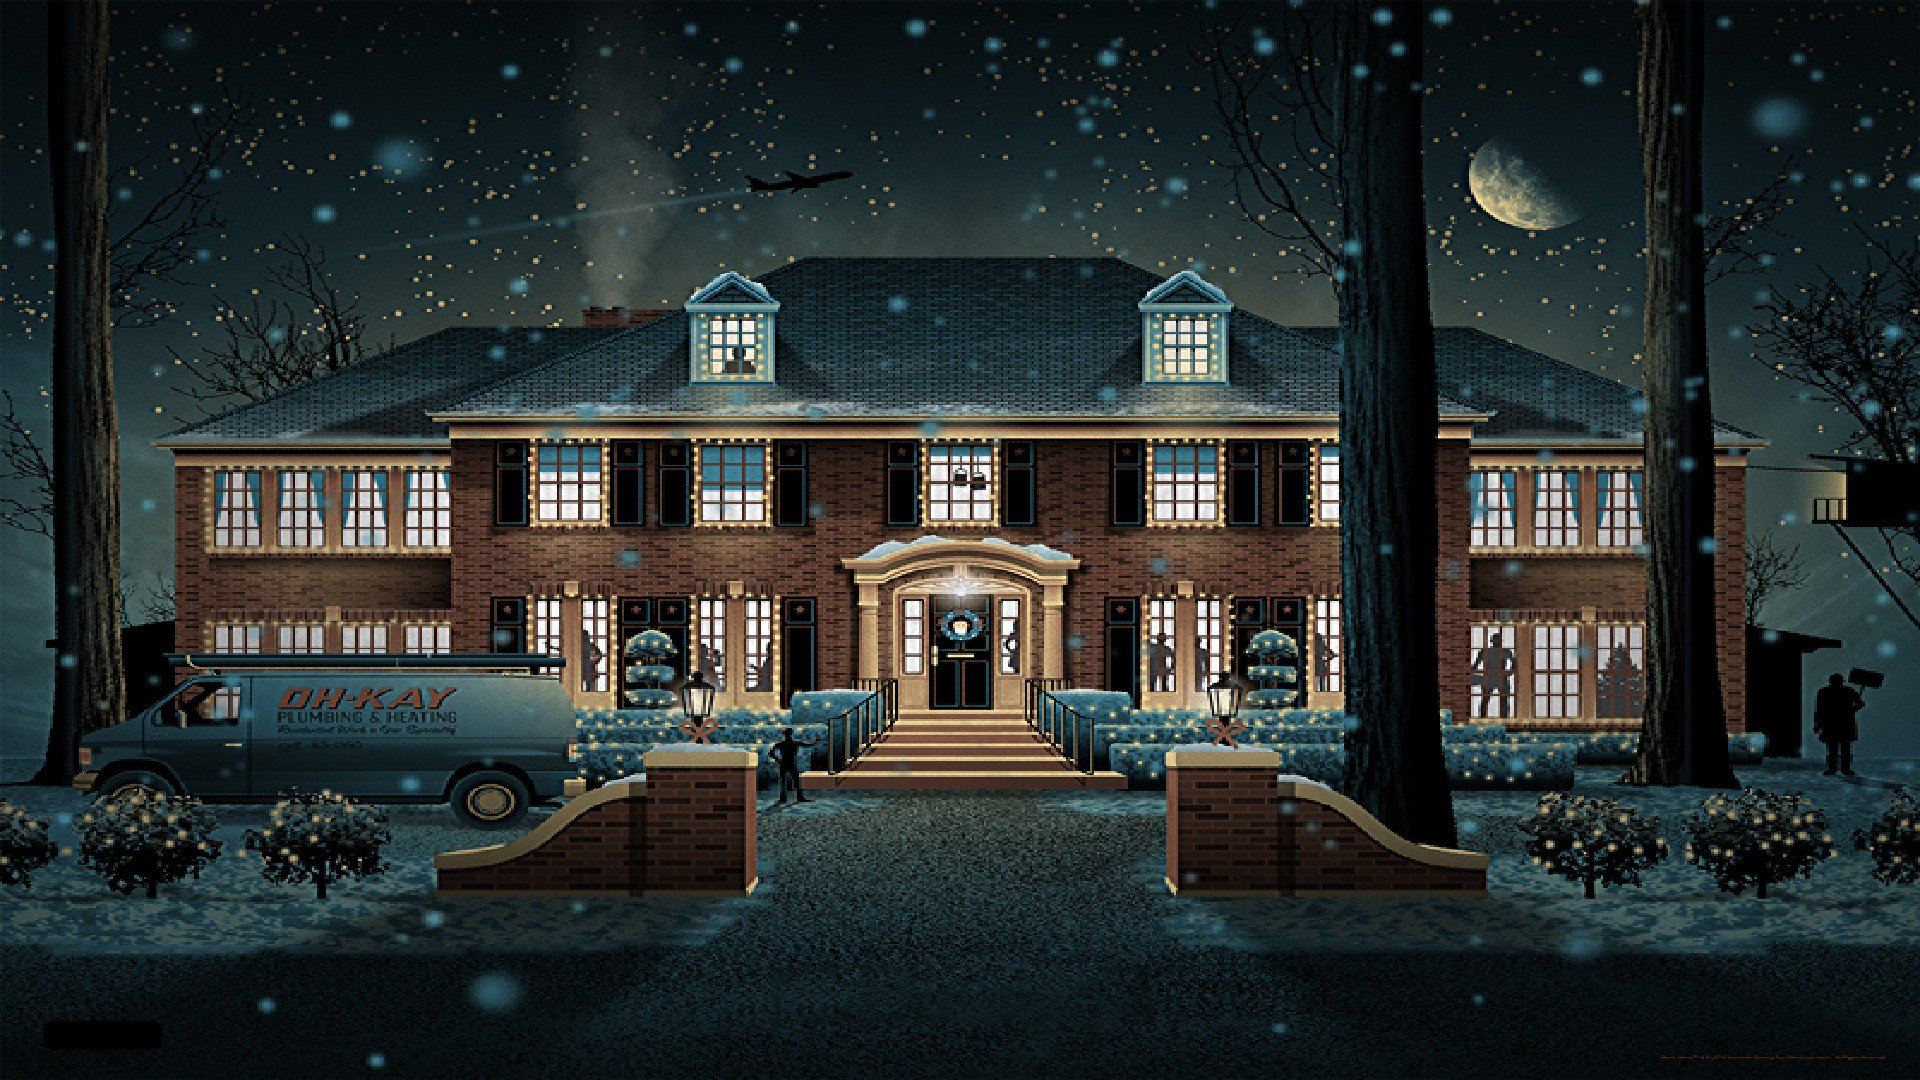 Home alone hd wallpaper for Wallpaper of home wall